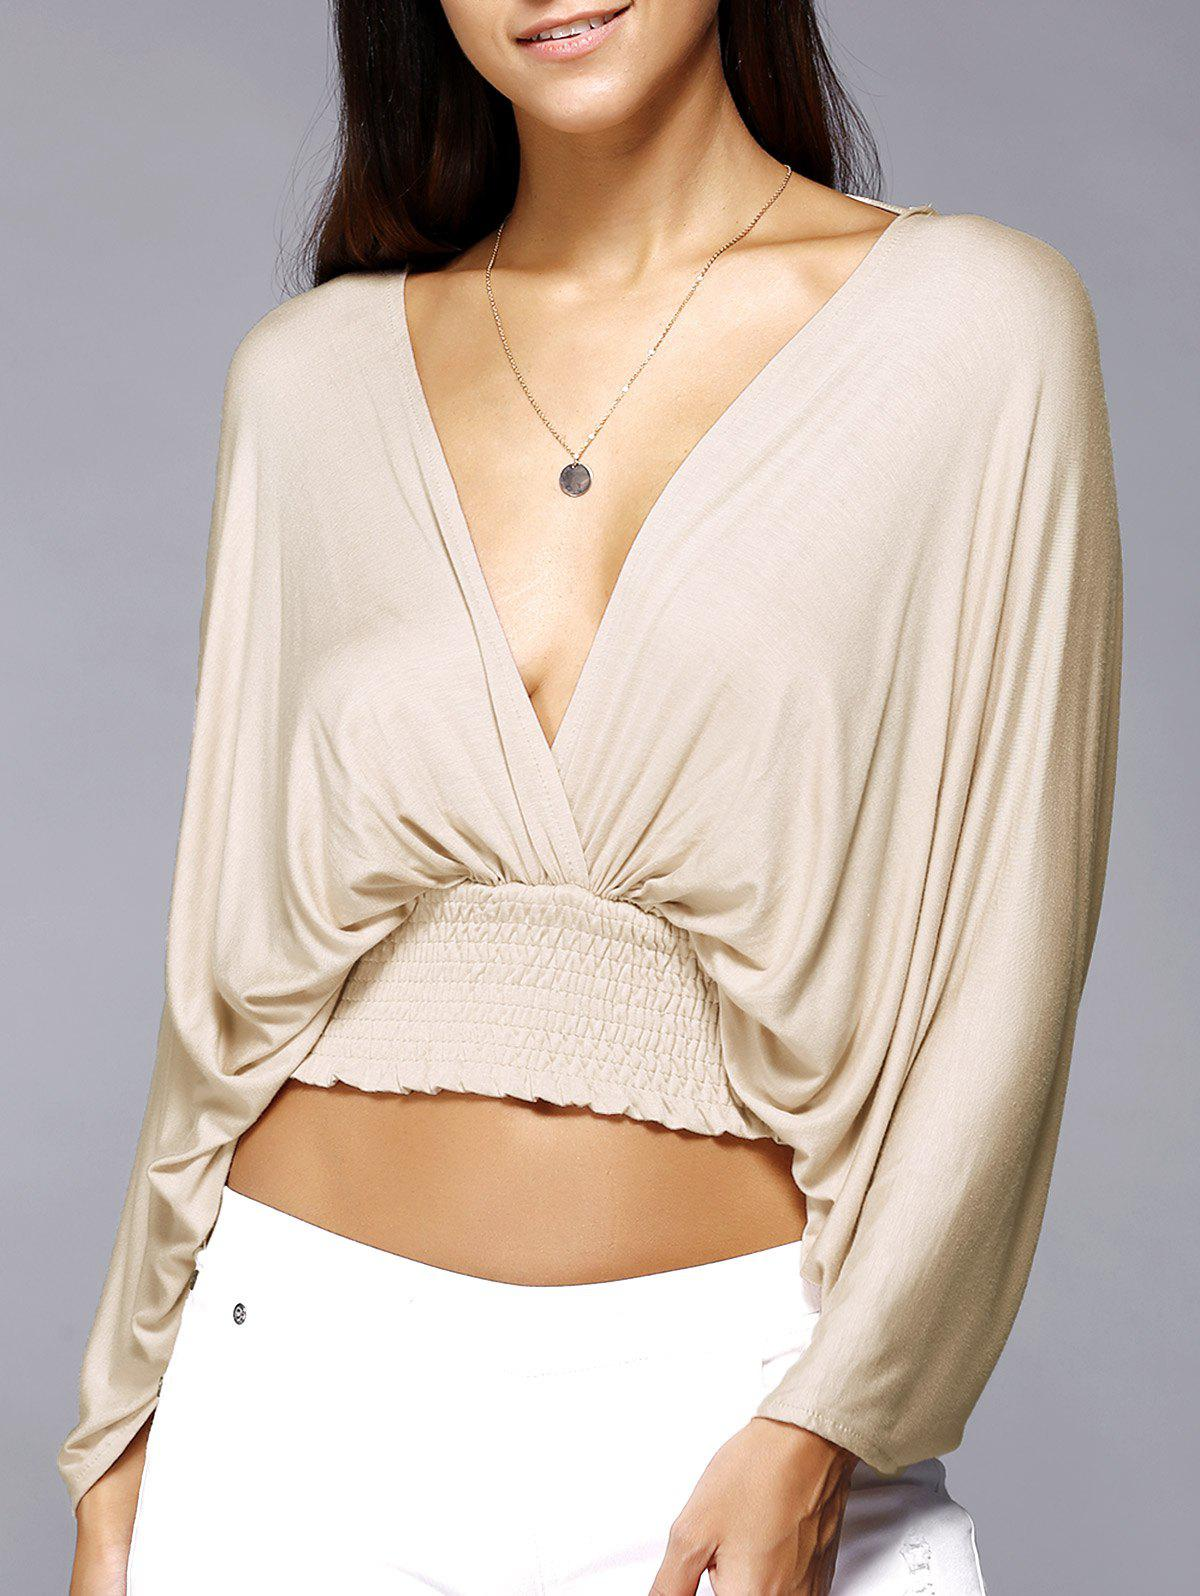 Plunge Neck Backless Dolman Sleeve Stretched Waist Cropped Blouse - BEIGE XL